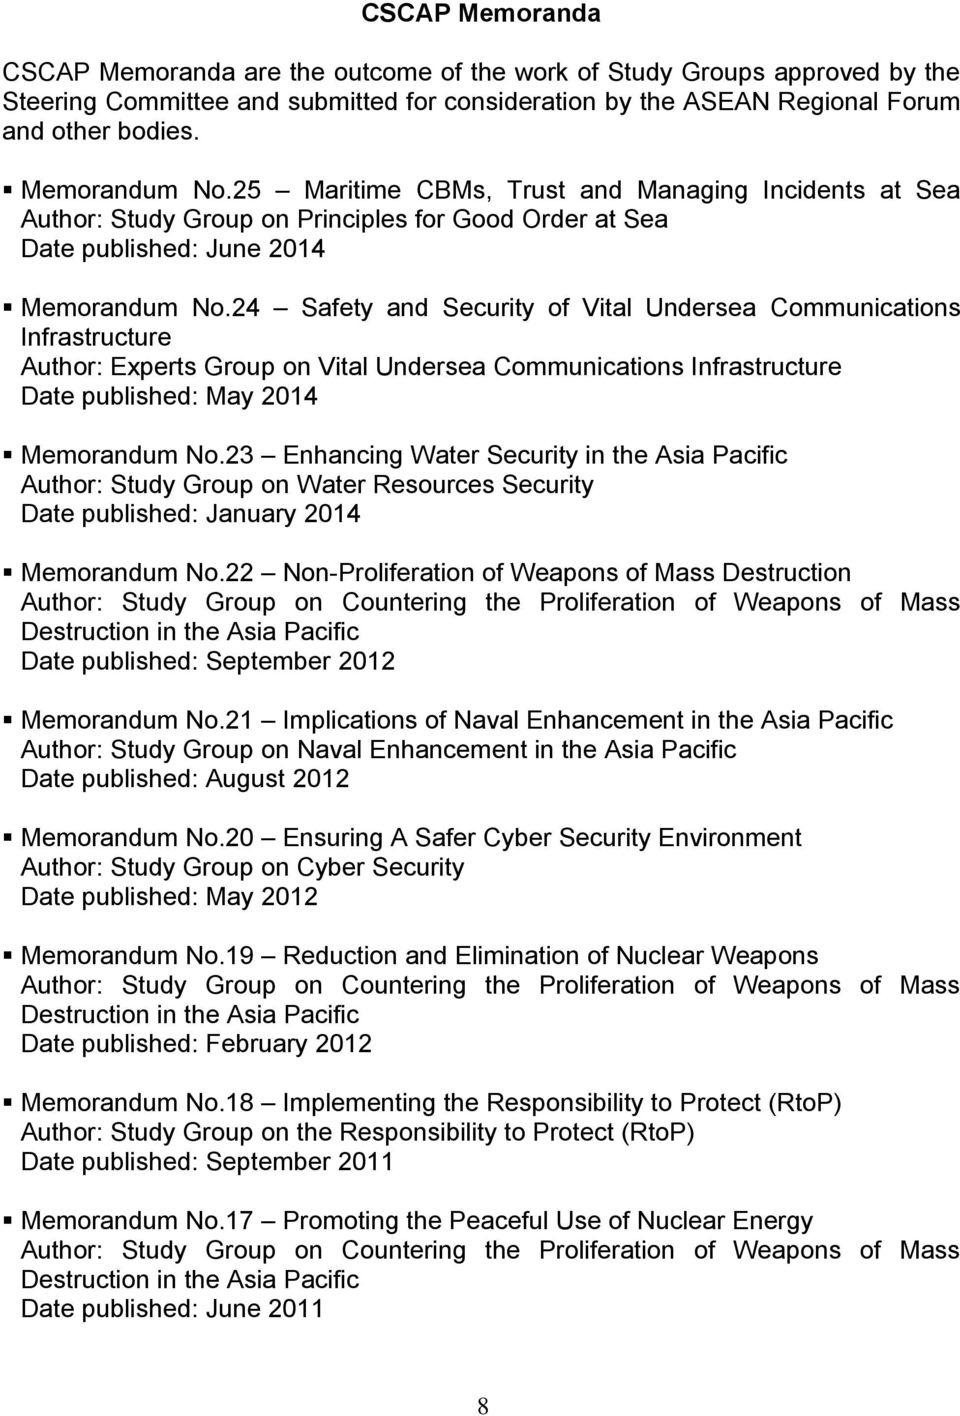 24 Safety and Security of Vital Undersea Communications Infrastructure Author: Experts Group on Vital Undersea Communications Infrastructure Date published: May 2014 Memorandum No.